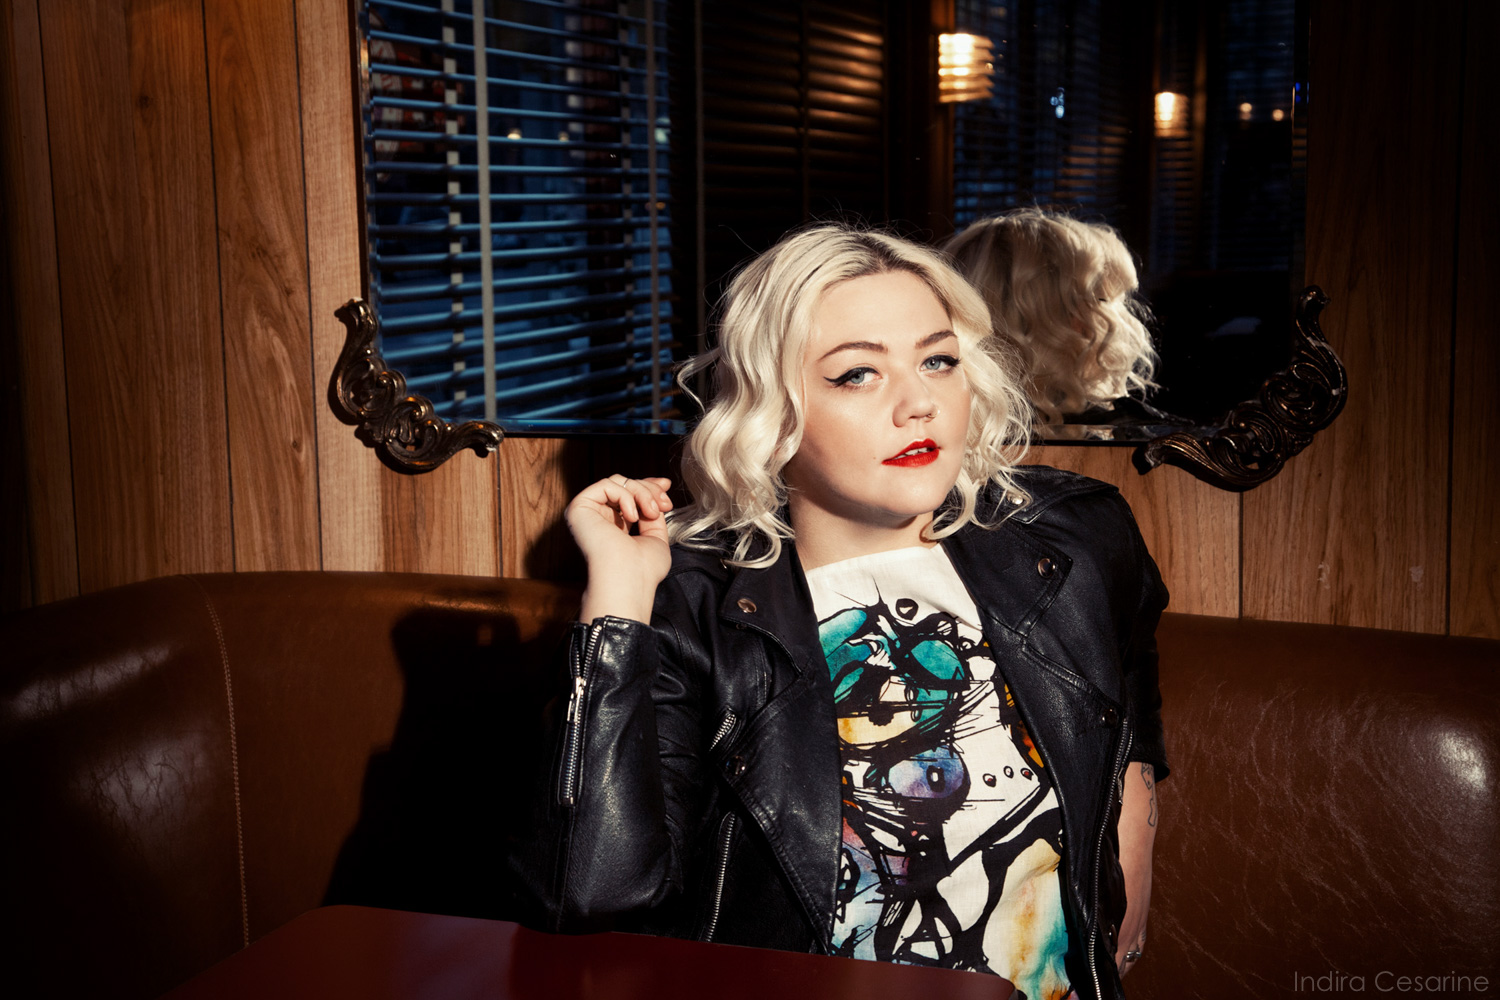 Elle-King-Photography-by-Indira-Cesarine-006.jpg